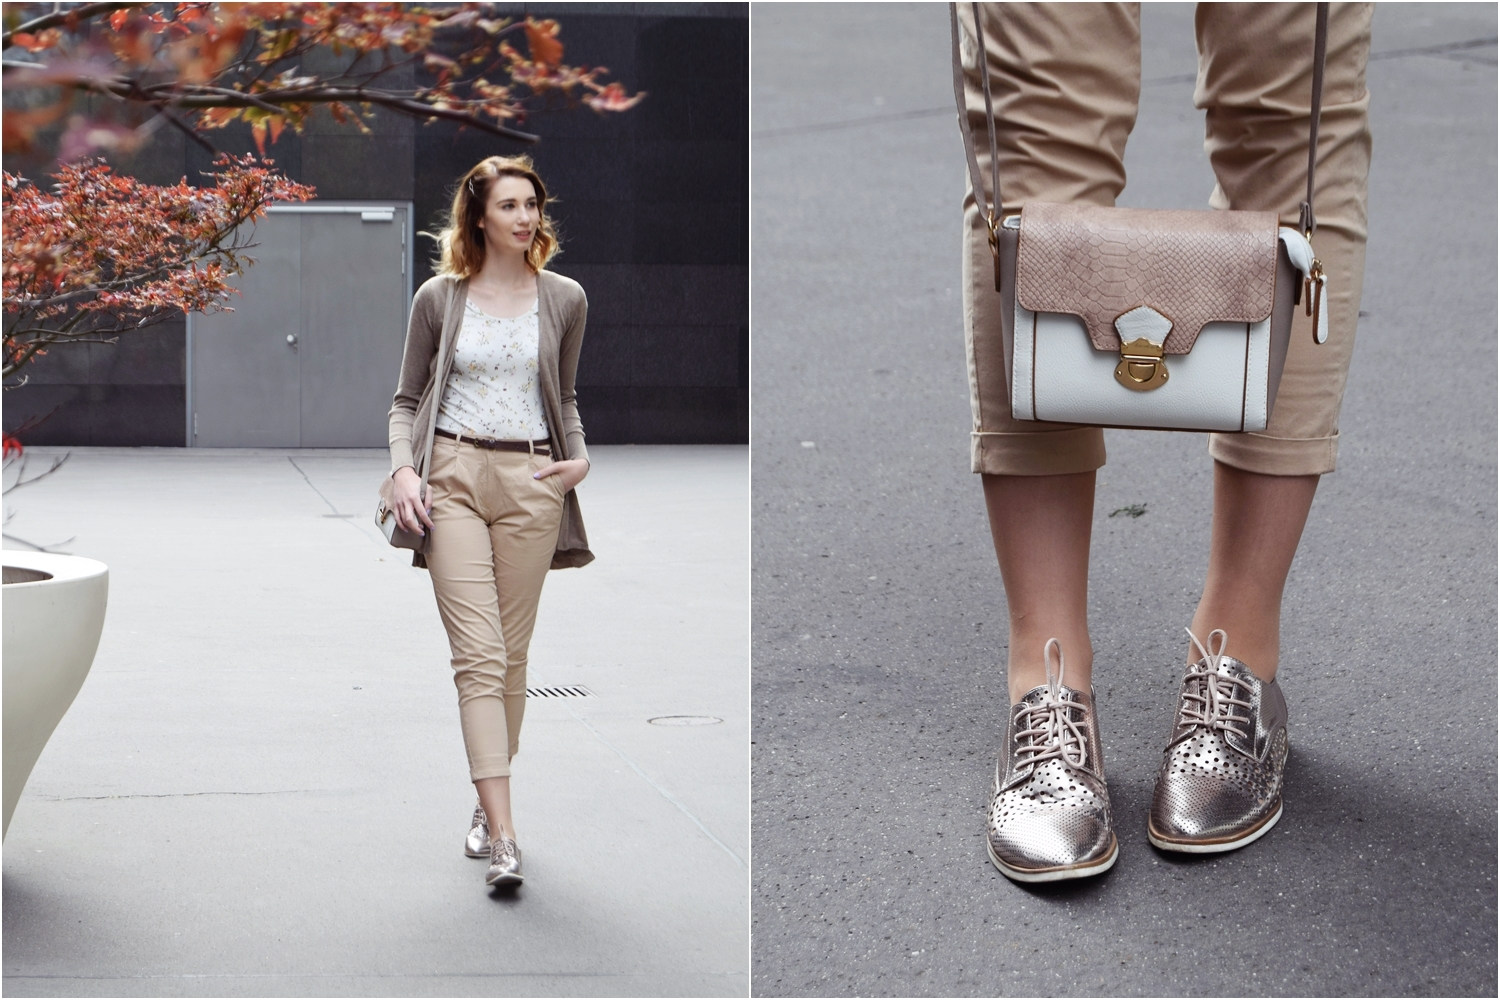 Vienna_outfit_Zalabell_fashion_elegant_A6